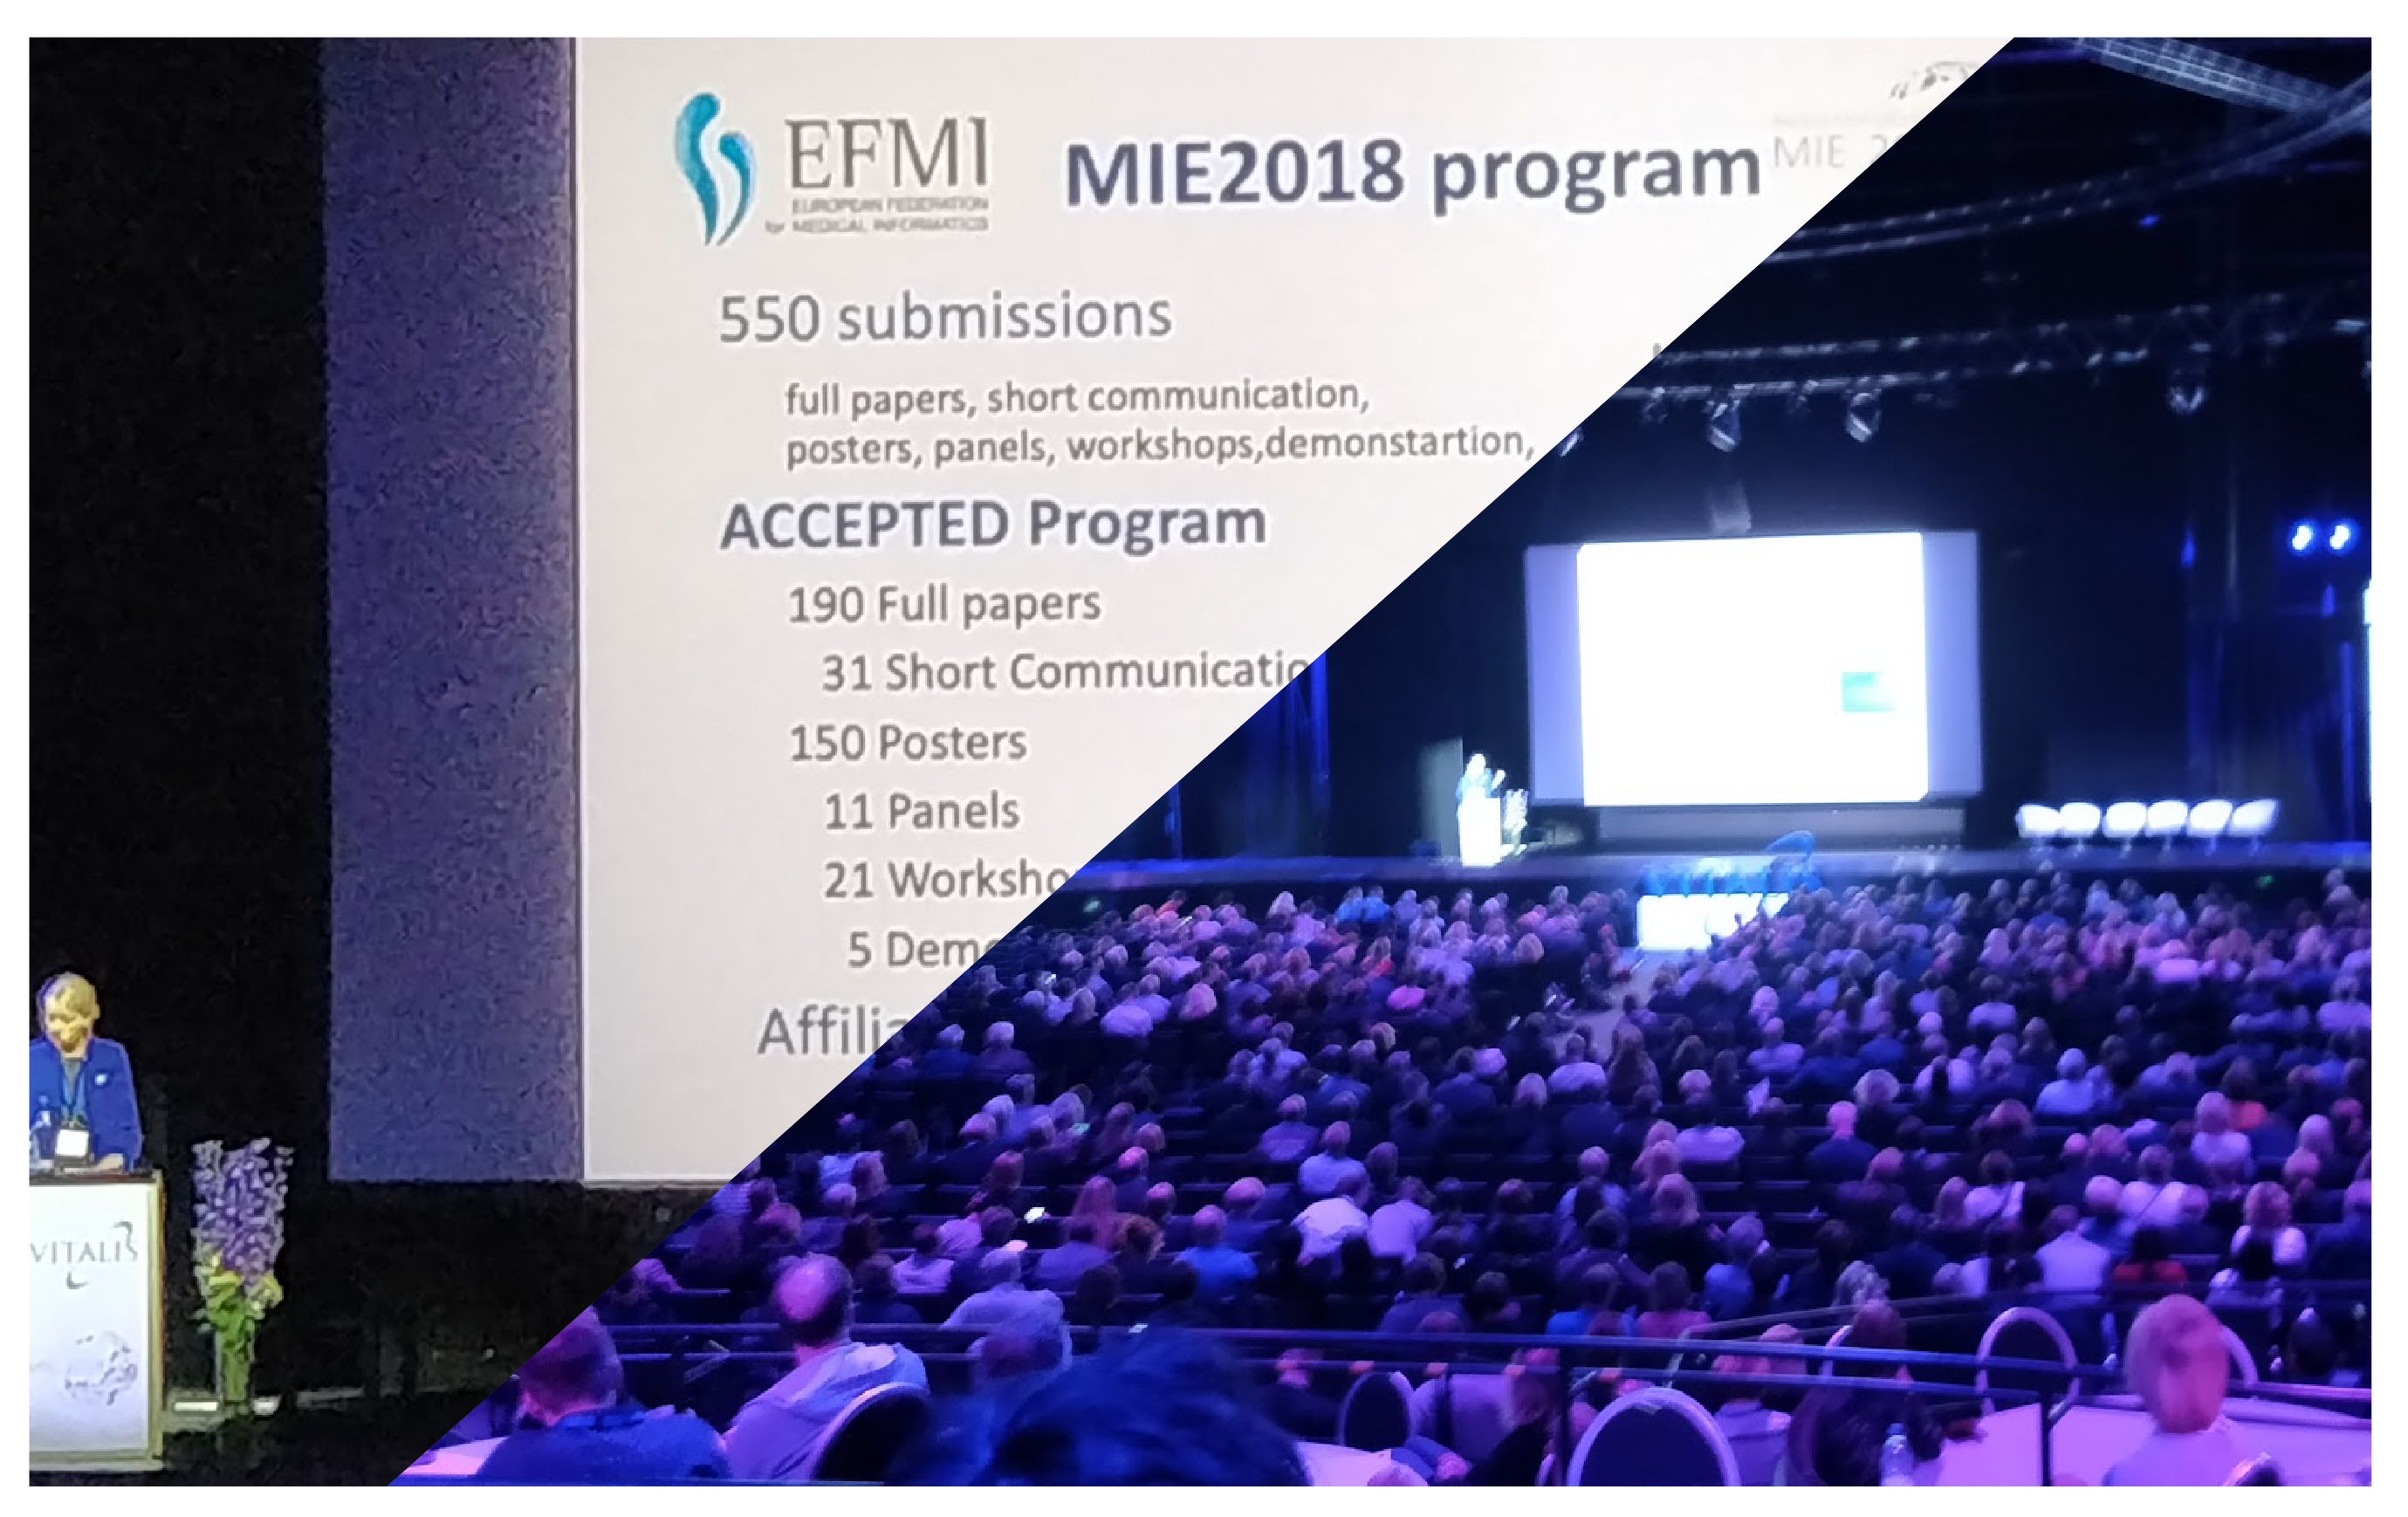 Collaborators were invited to integrate EFMI-European Federation for Medical Informatics SSE